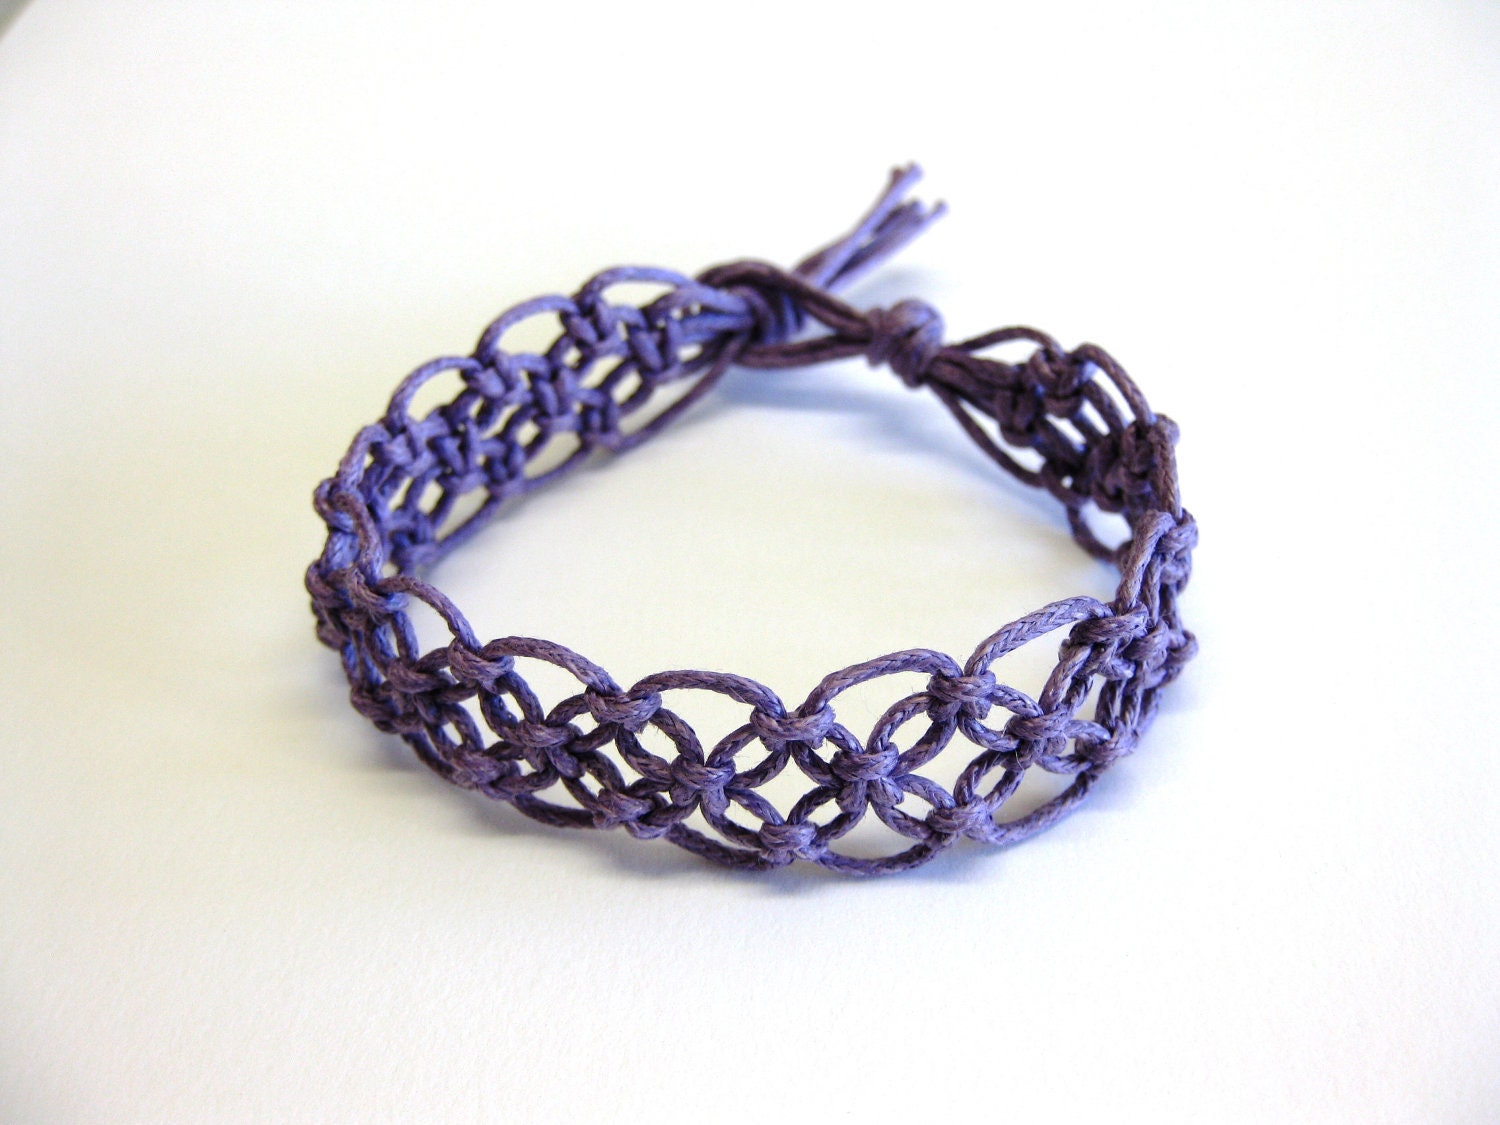 Macrame Bracelet Pattern || using design pattern in uml